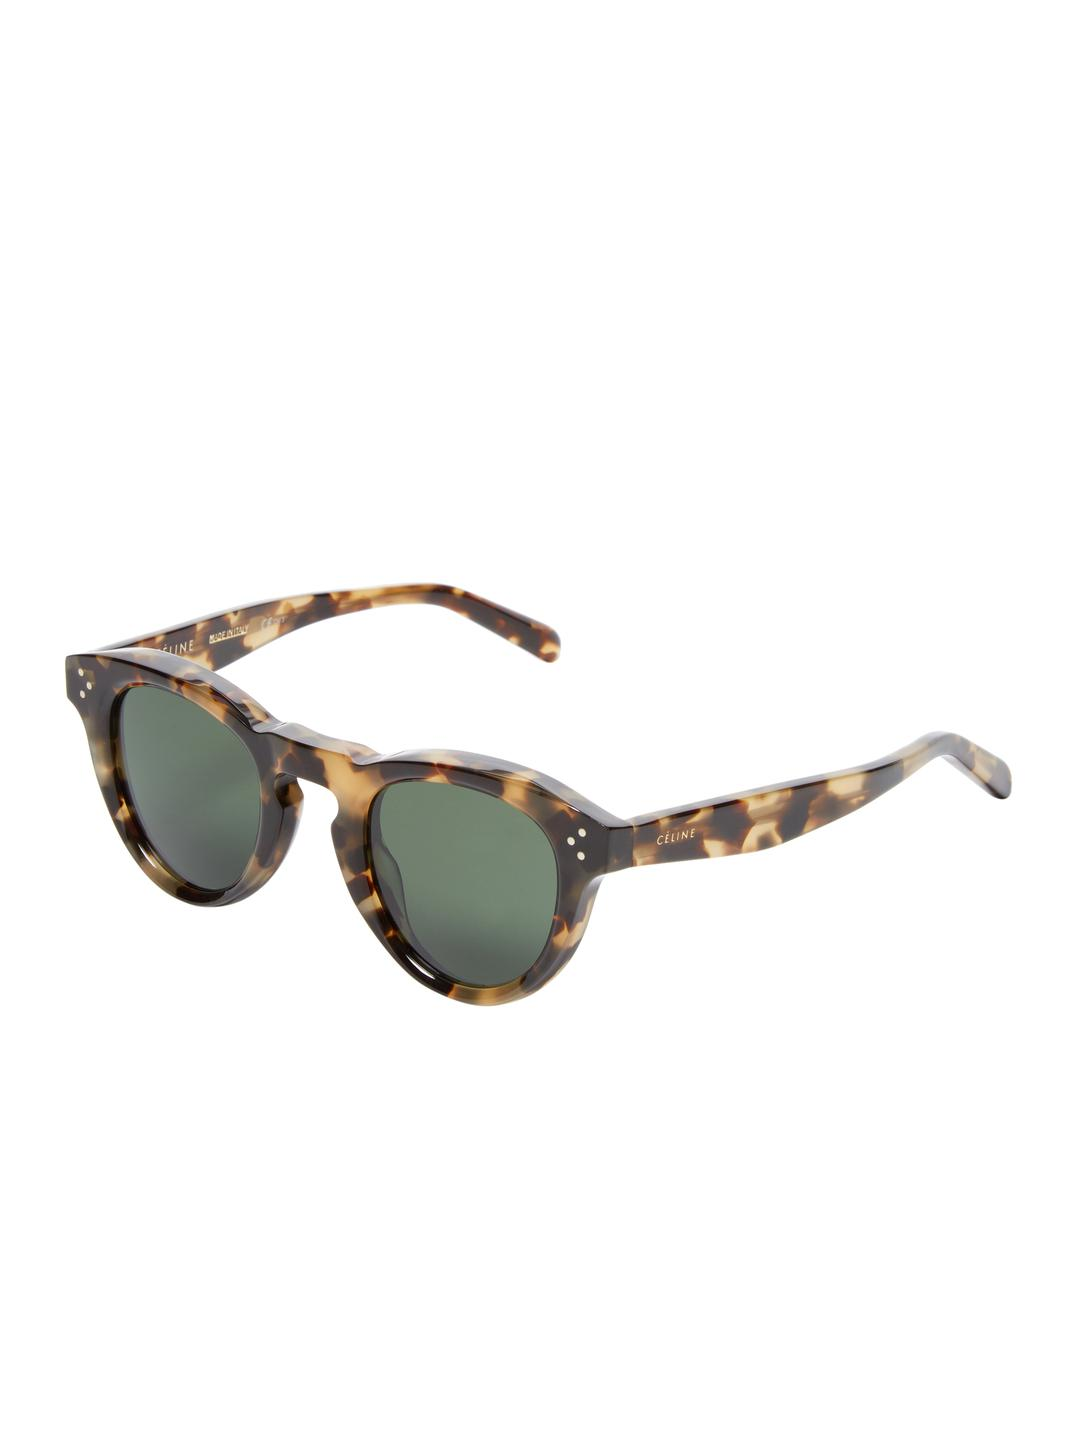 Lyst - Céline Bevel Keyhole Cat Eye Frame in Brown